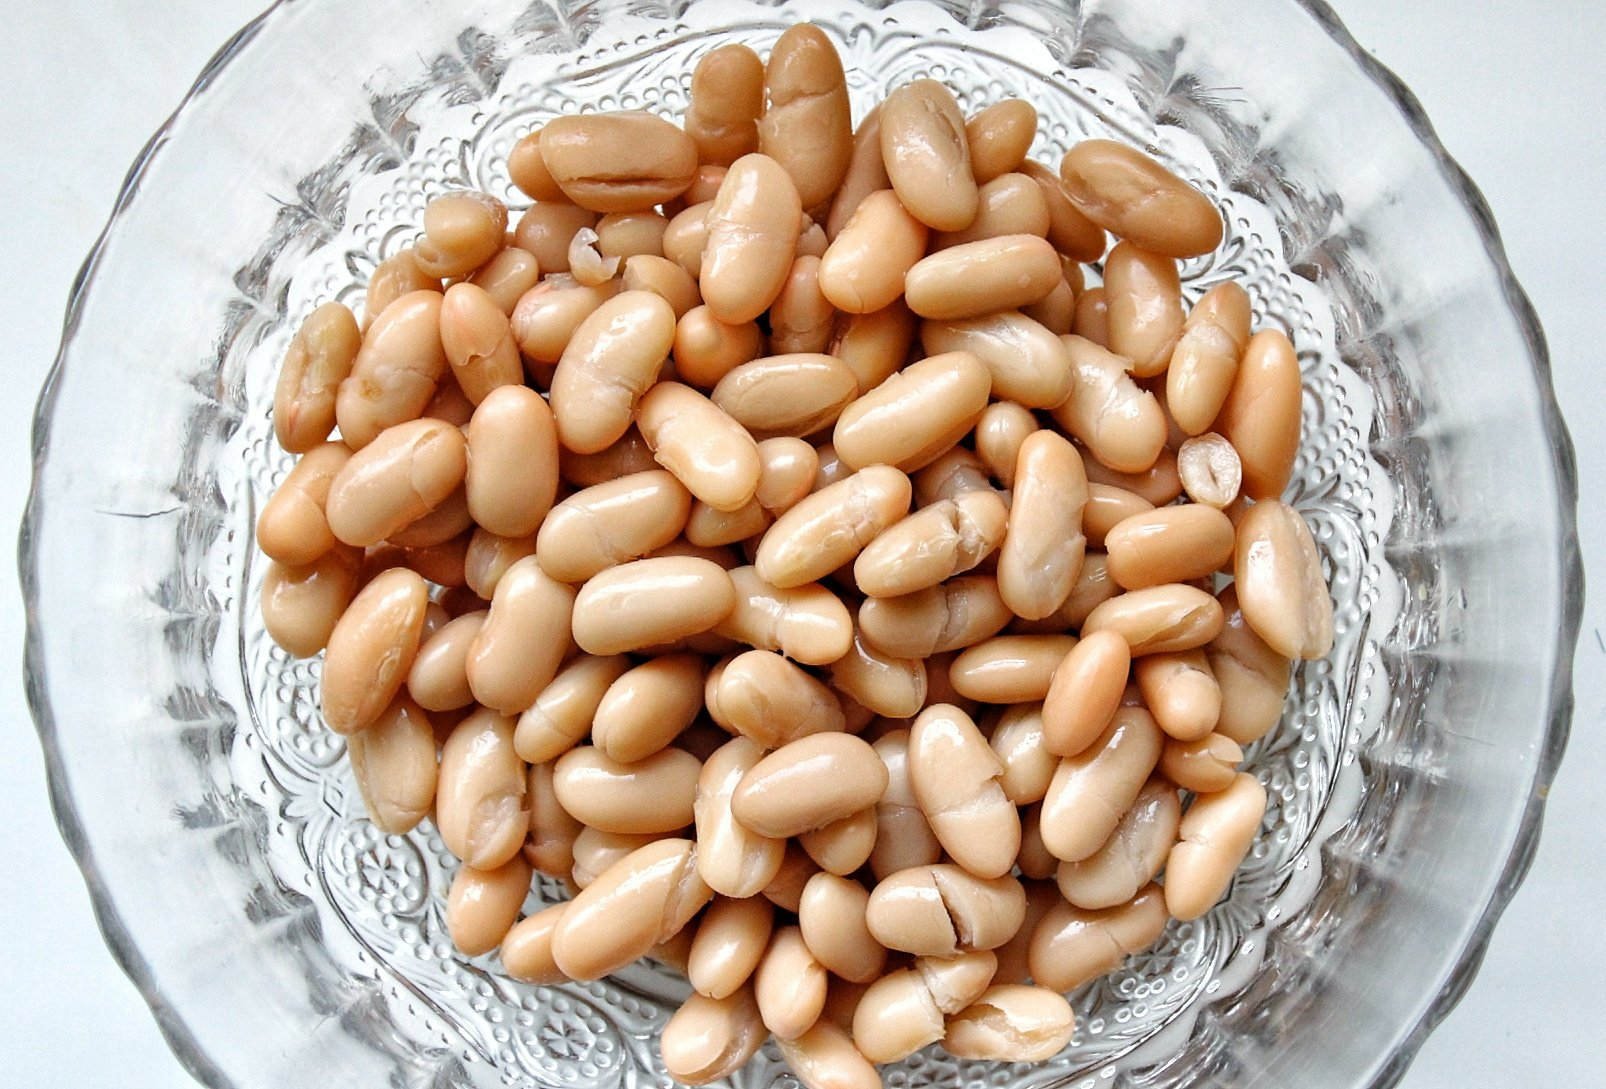 Cannellini beans in a glass bowl